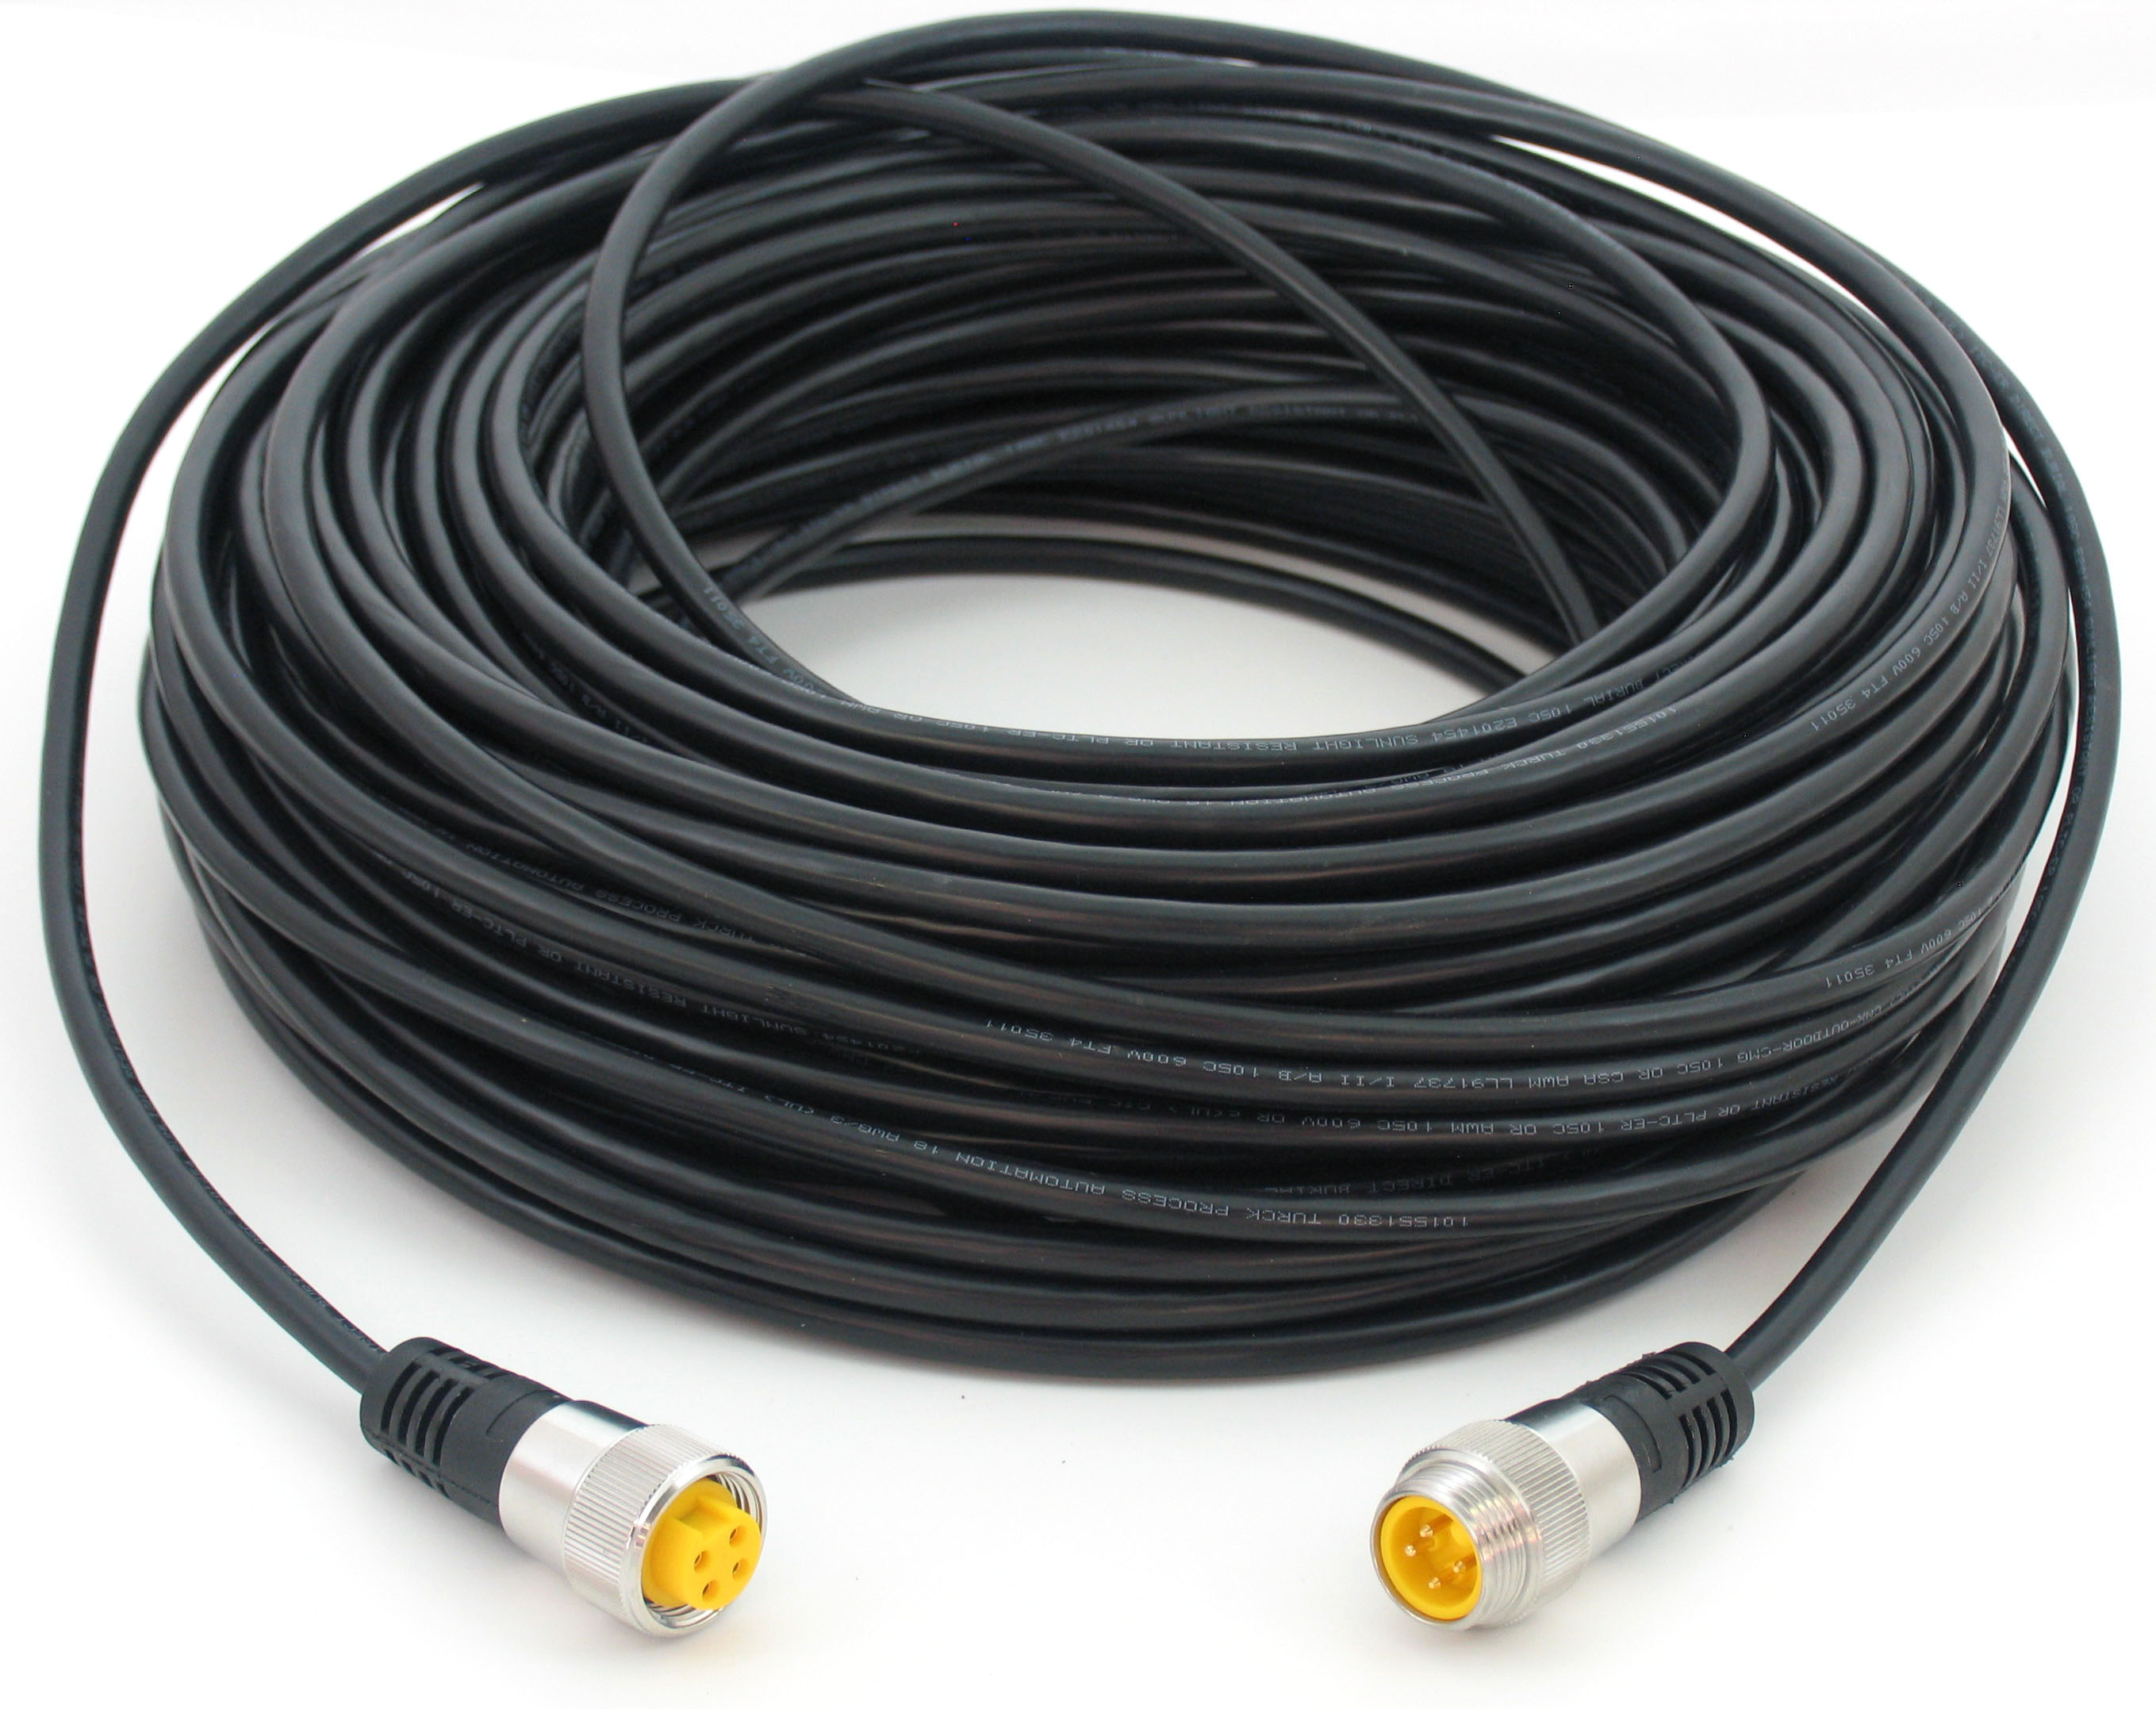 Quick Connect Cables